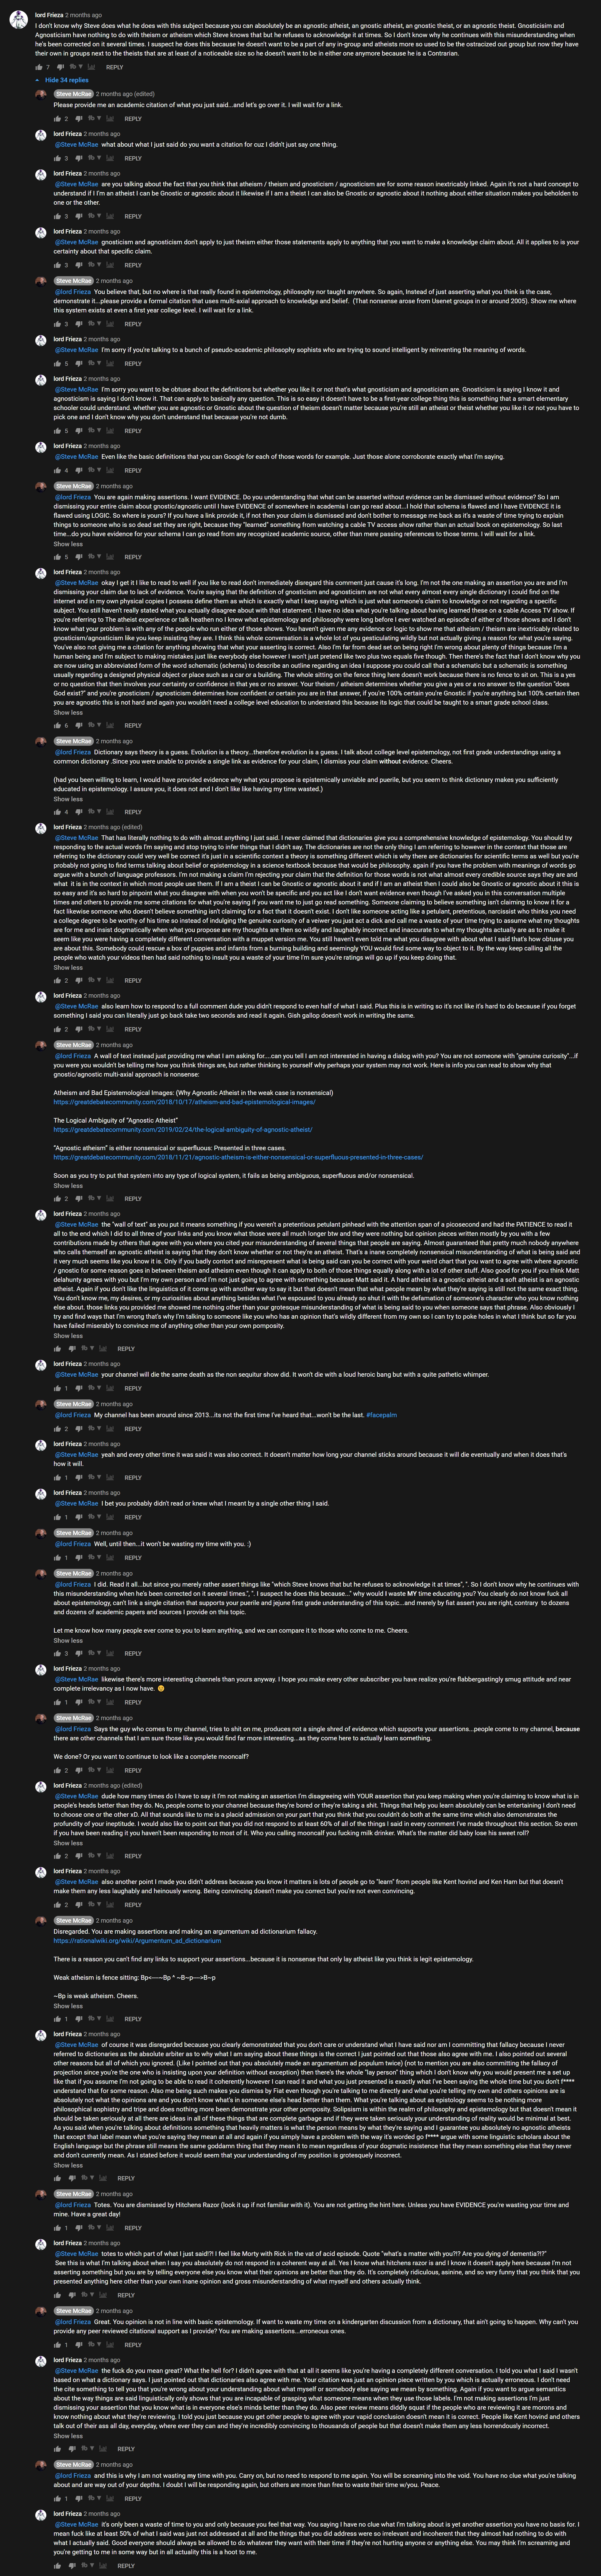 YouTubers lord Frieza and Steve McRae arguing about atheism and agnosticism